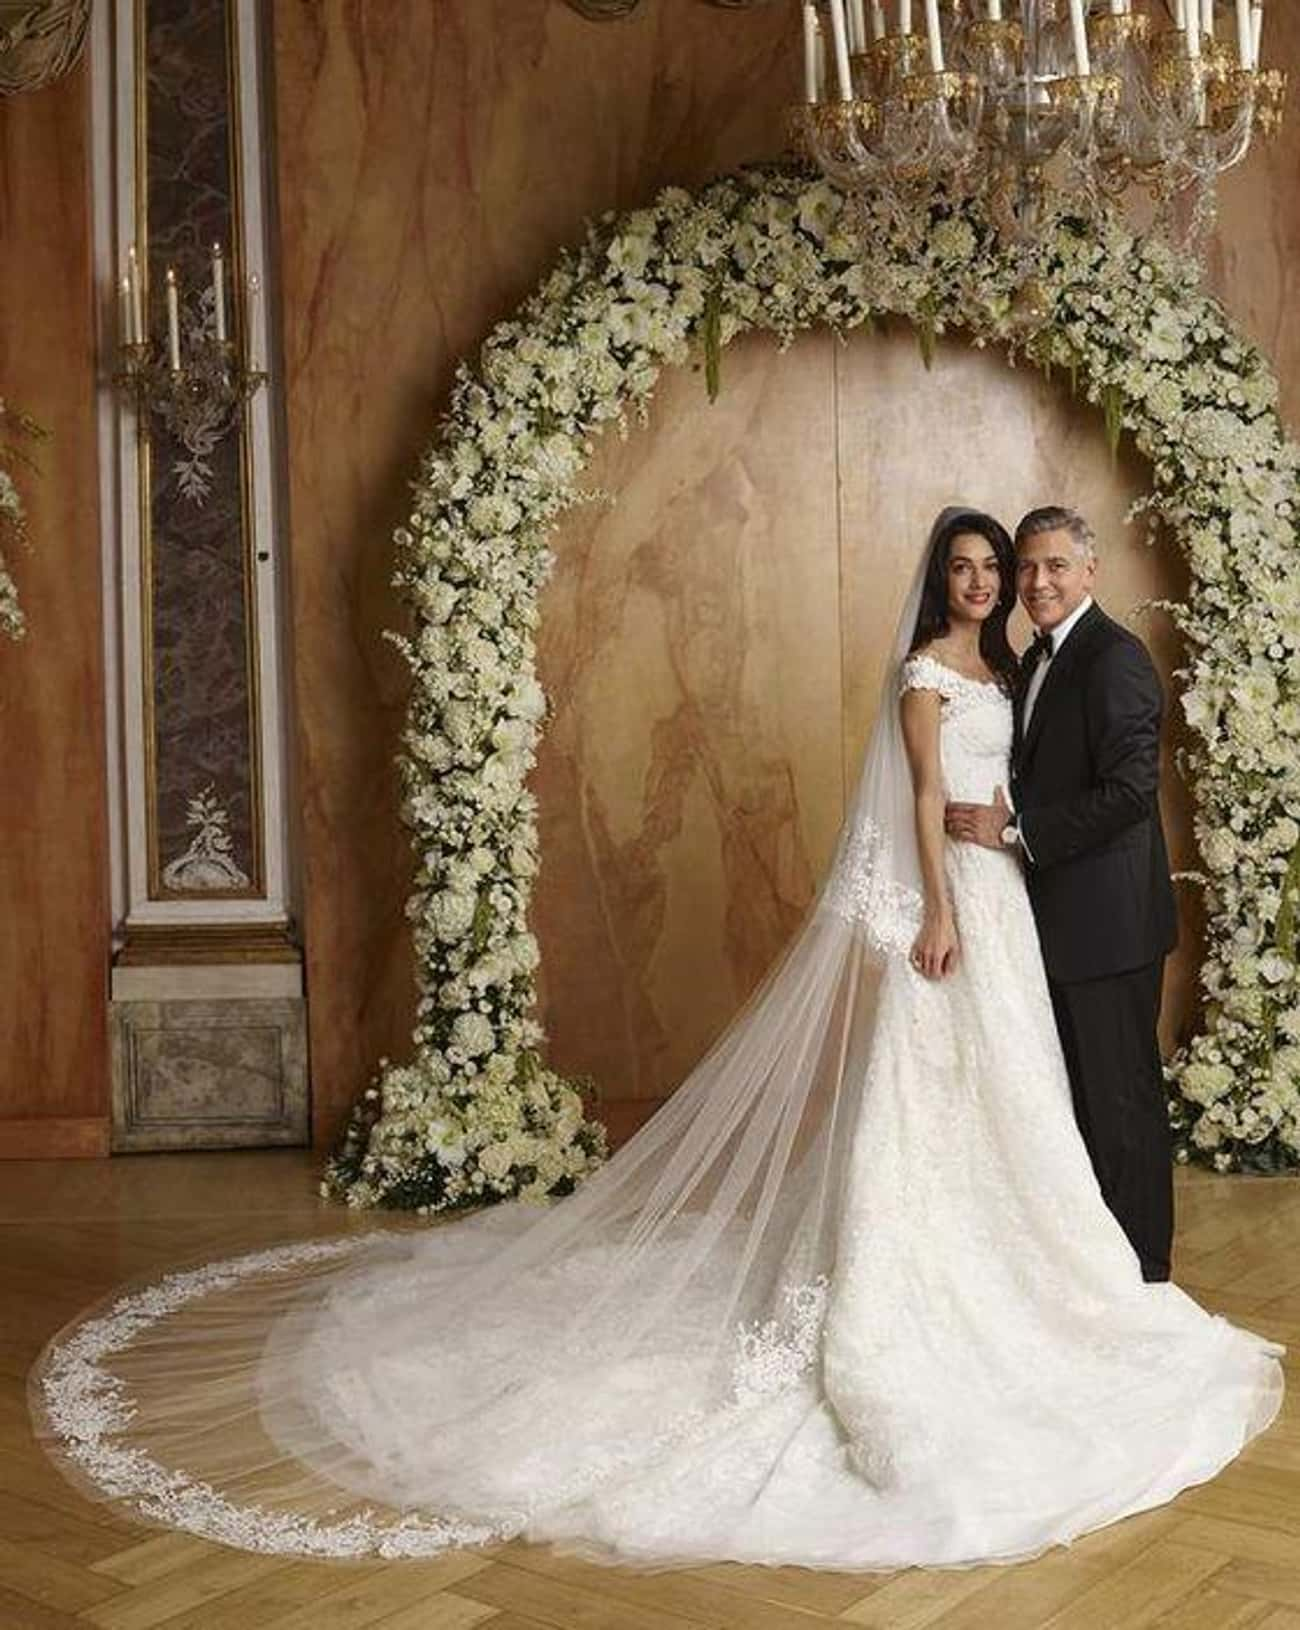 George Clooney And Amal Alamud is listed (or ranked) 4 on the list 29 First-Dance Songs Celebs Played At Their Weddings